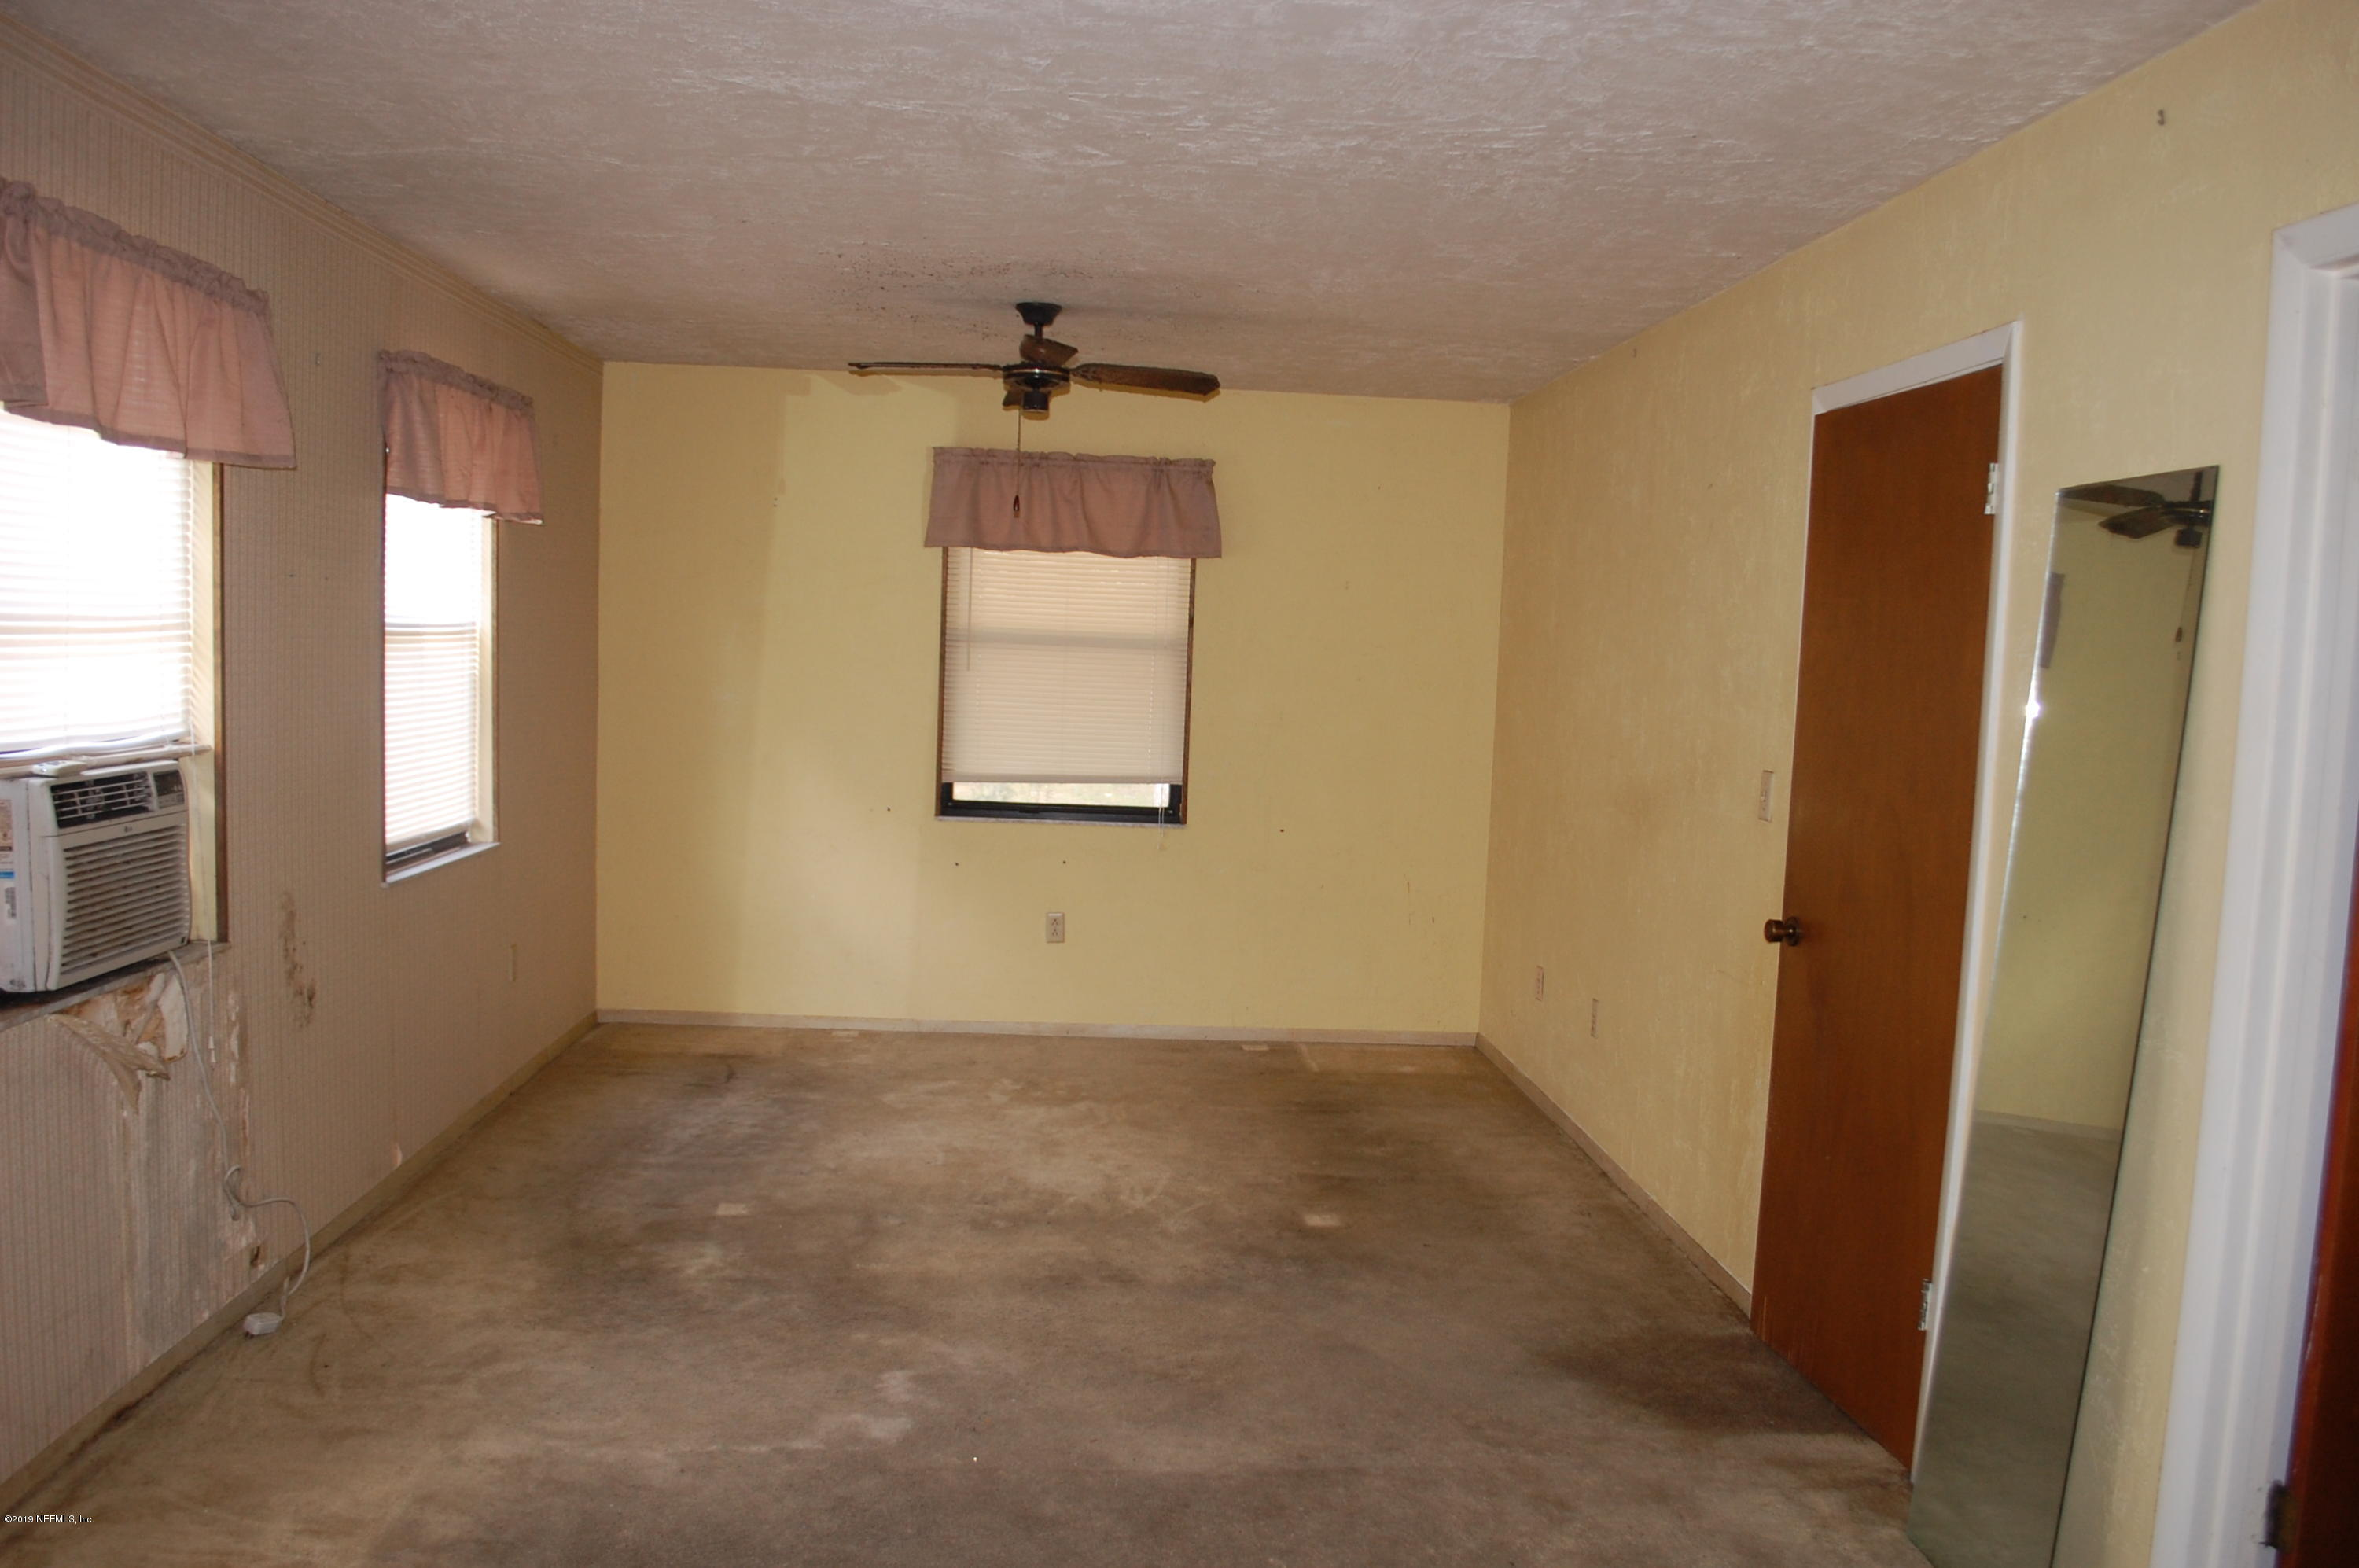 295 REDWATER LAKE, HAWTHORNE, FLORIDA 32640, 3 Bedrooms Bedrooms, ,2 BathroomsBathrooms,Residential,For sale,REDWATER LAKE,1021768